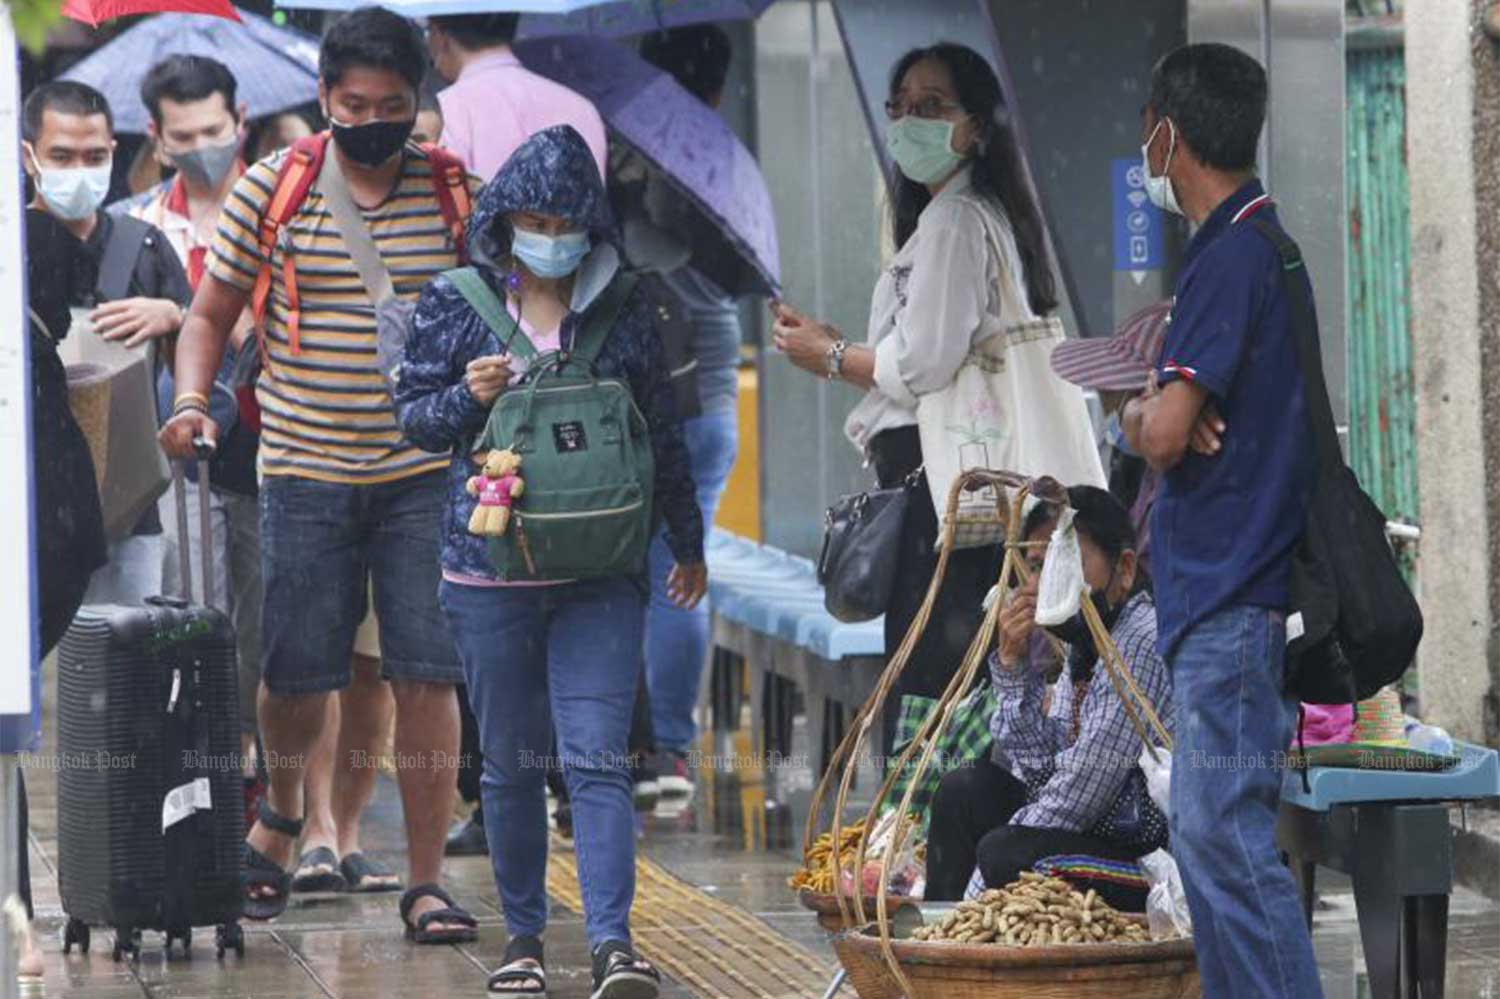 People wearing face masks walk near a bus stop and the Mor Chit BTS Skytrain station in Chatuchak district, Bangkok, as heavy rain pounds the capital on Friday. (Photo: Pattarapong Chatpattarasill)